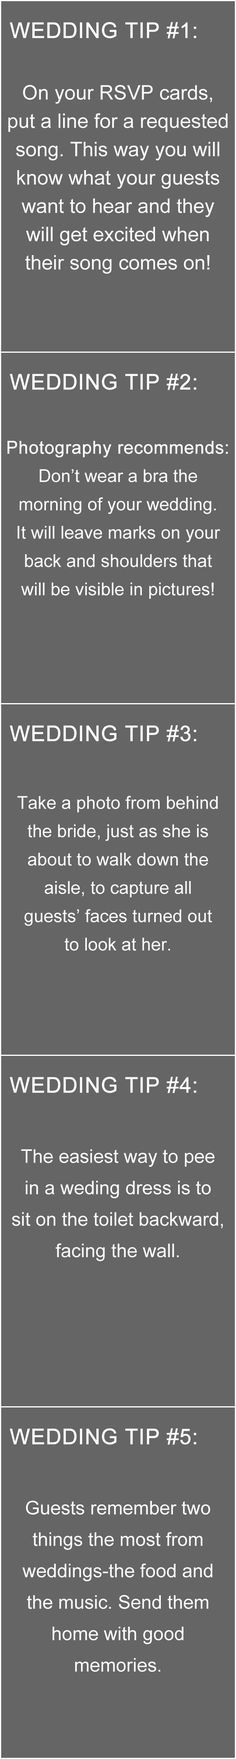 top 10 wedding tip i